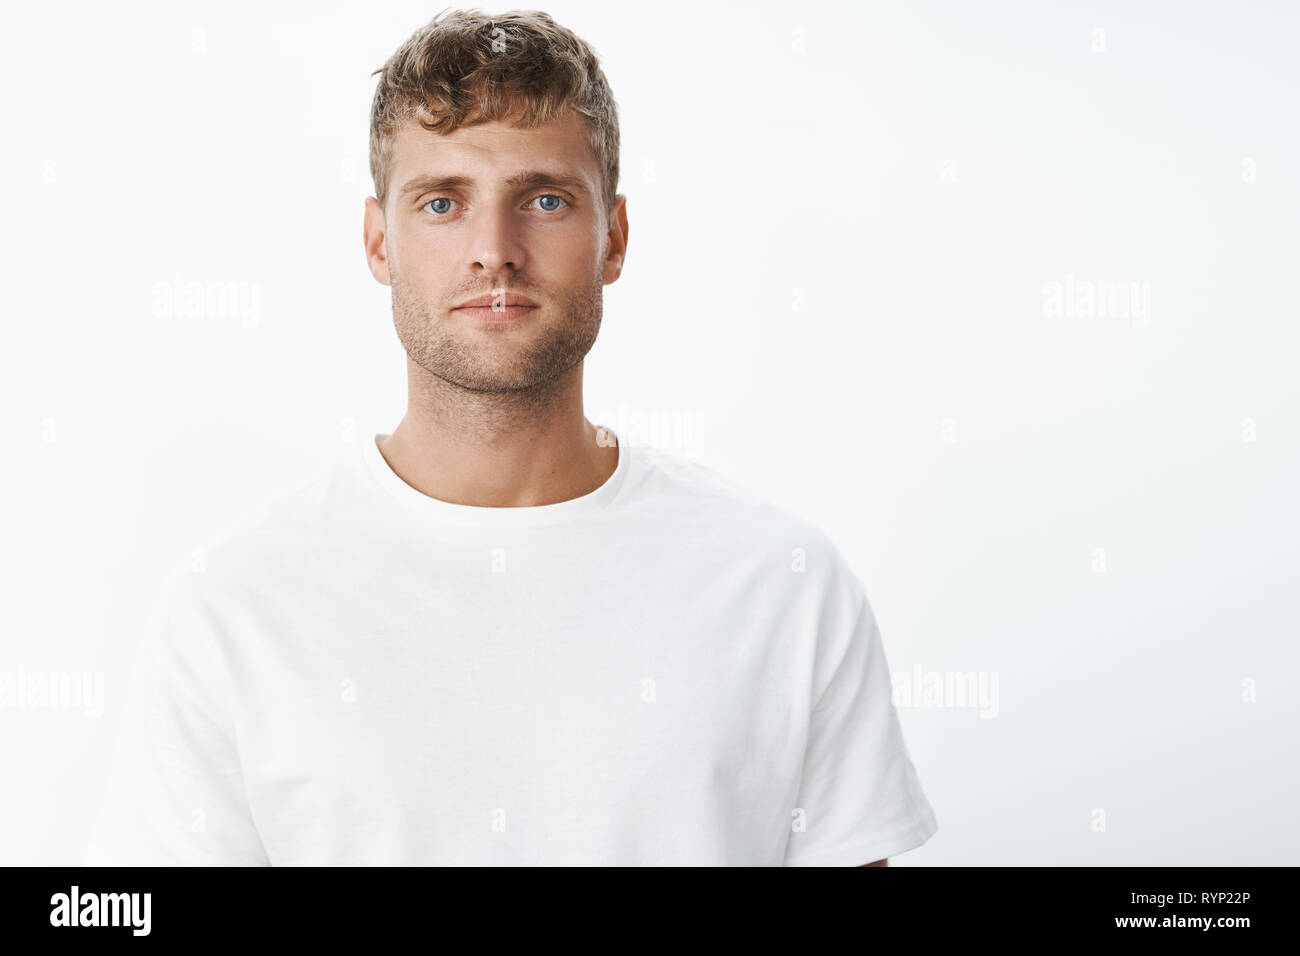 Serious-looking peaceful and calm attractive blond european man with blue eyes and bristle looking at camera focused and chill without emotions - Stock Image